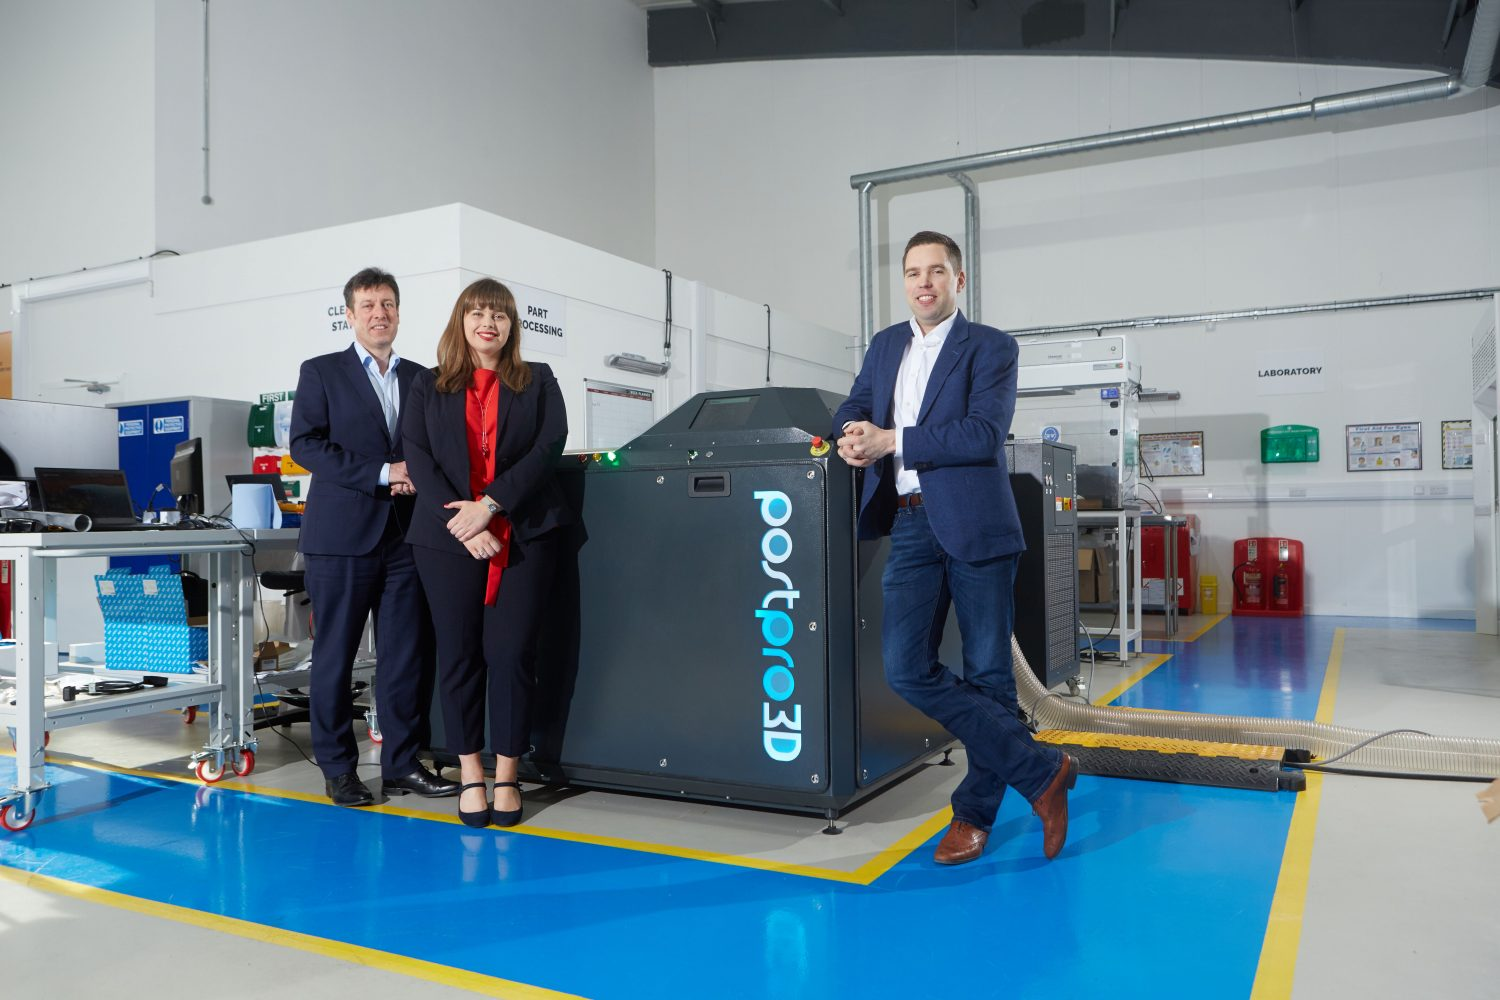 2 men and a woman from Additive Manufacturing Technologies stood next to a 3D printer